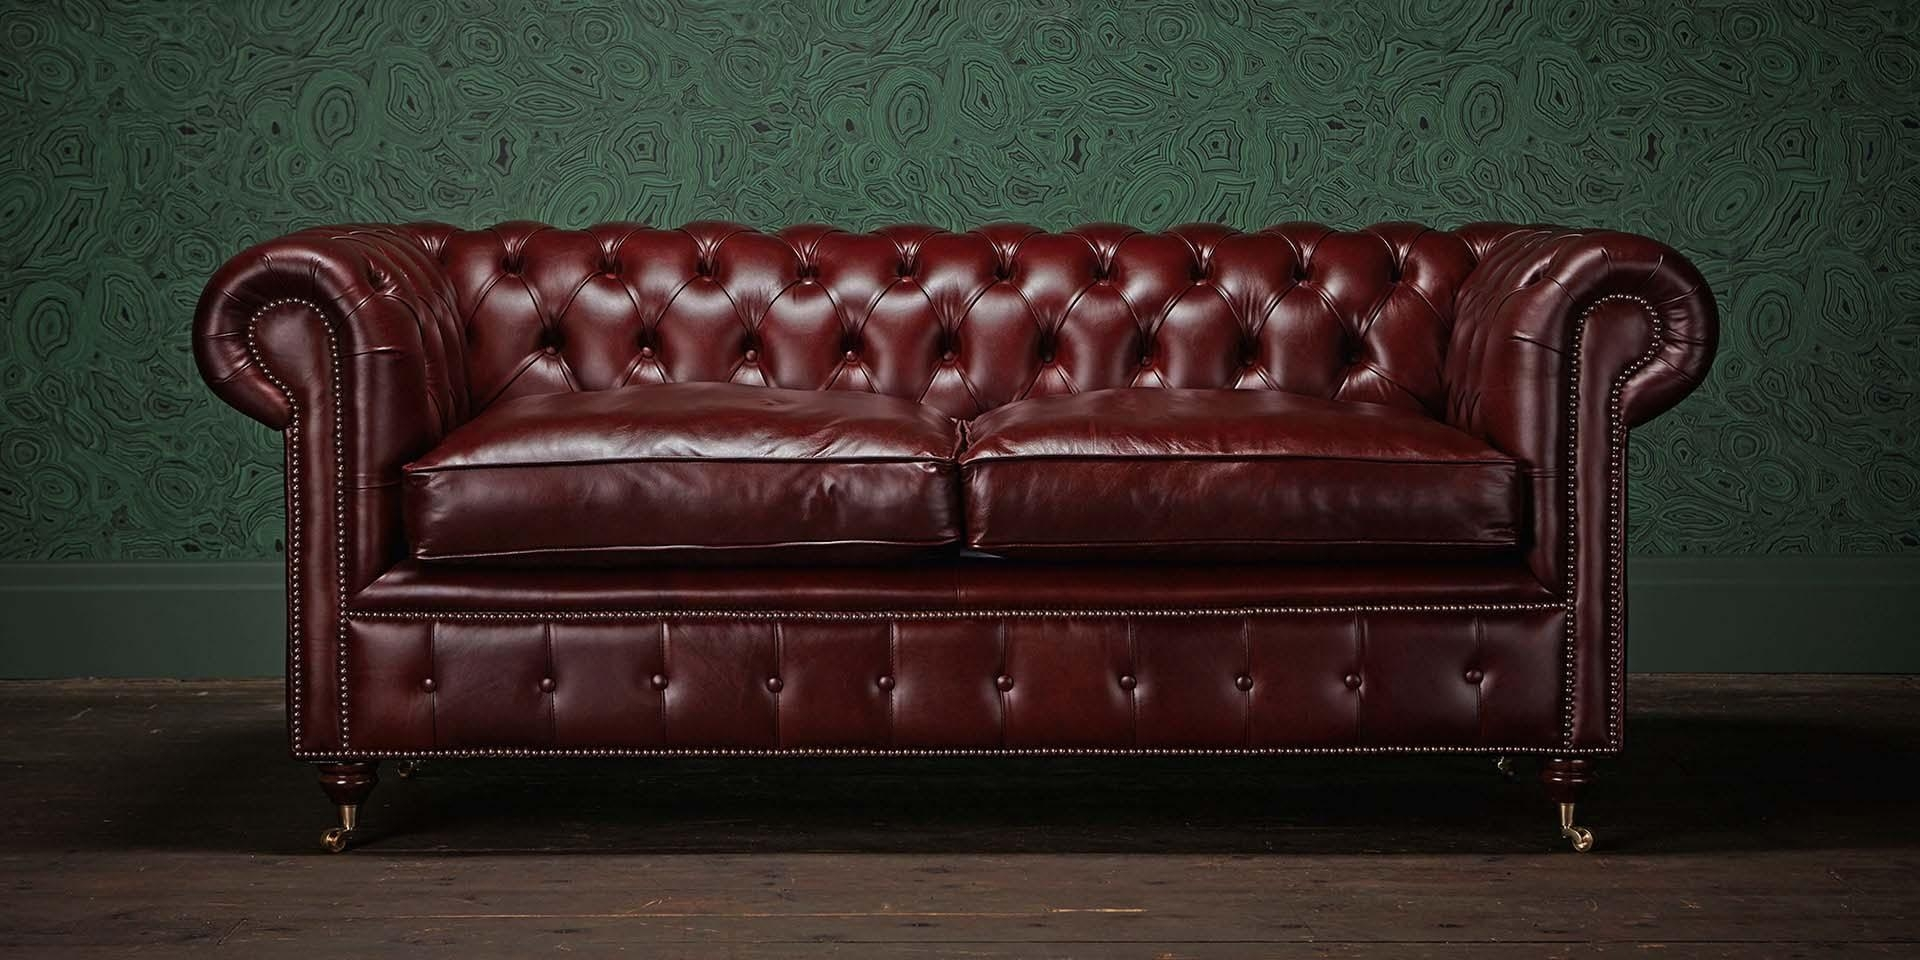 Chesterfields Of England | The Original Chesterfield Company For Leather Chesterfield Sofas (View 6 of 20)